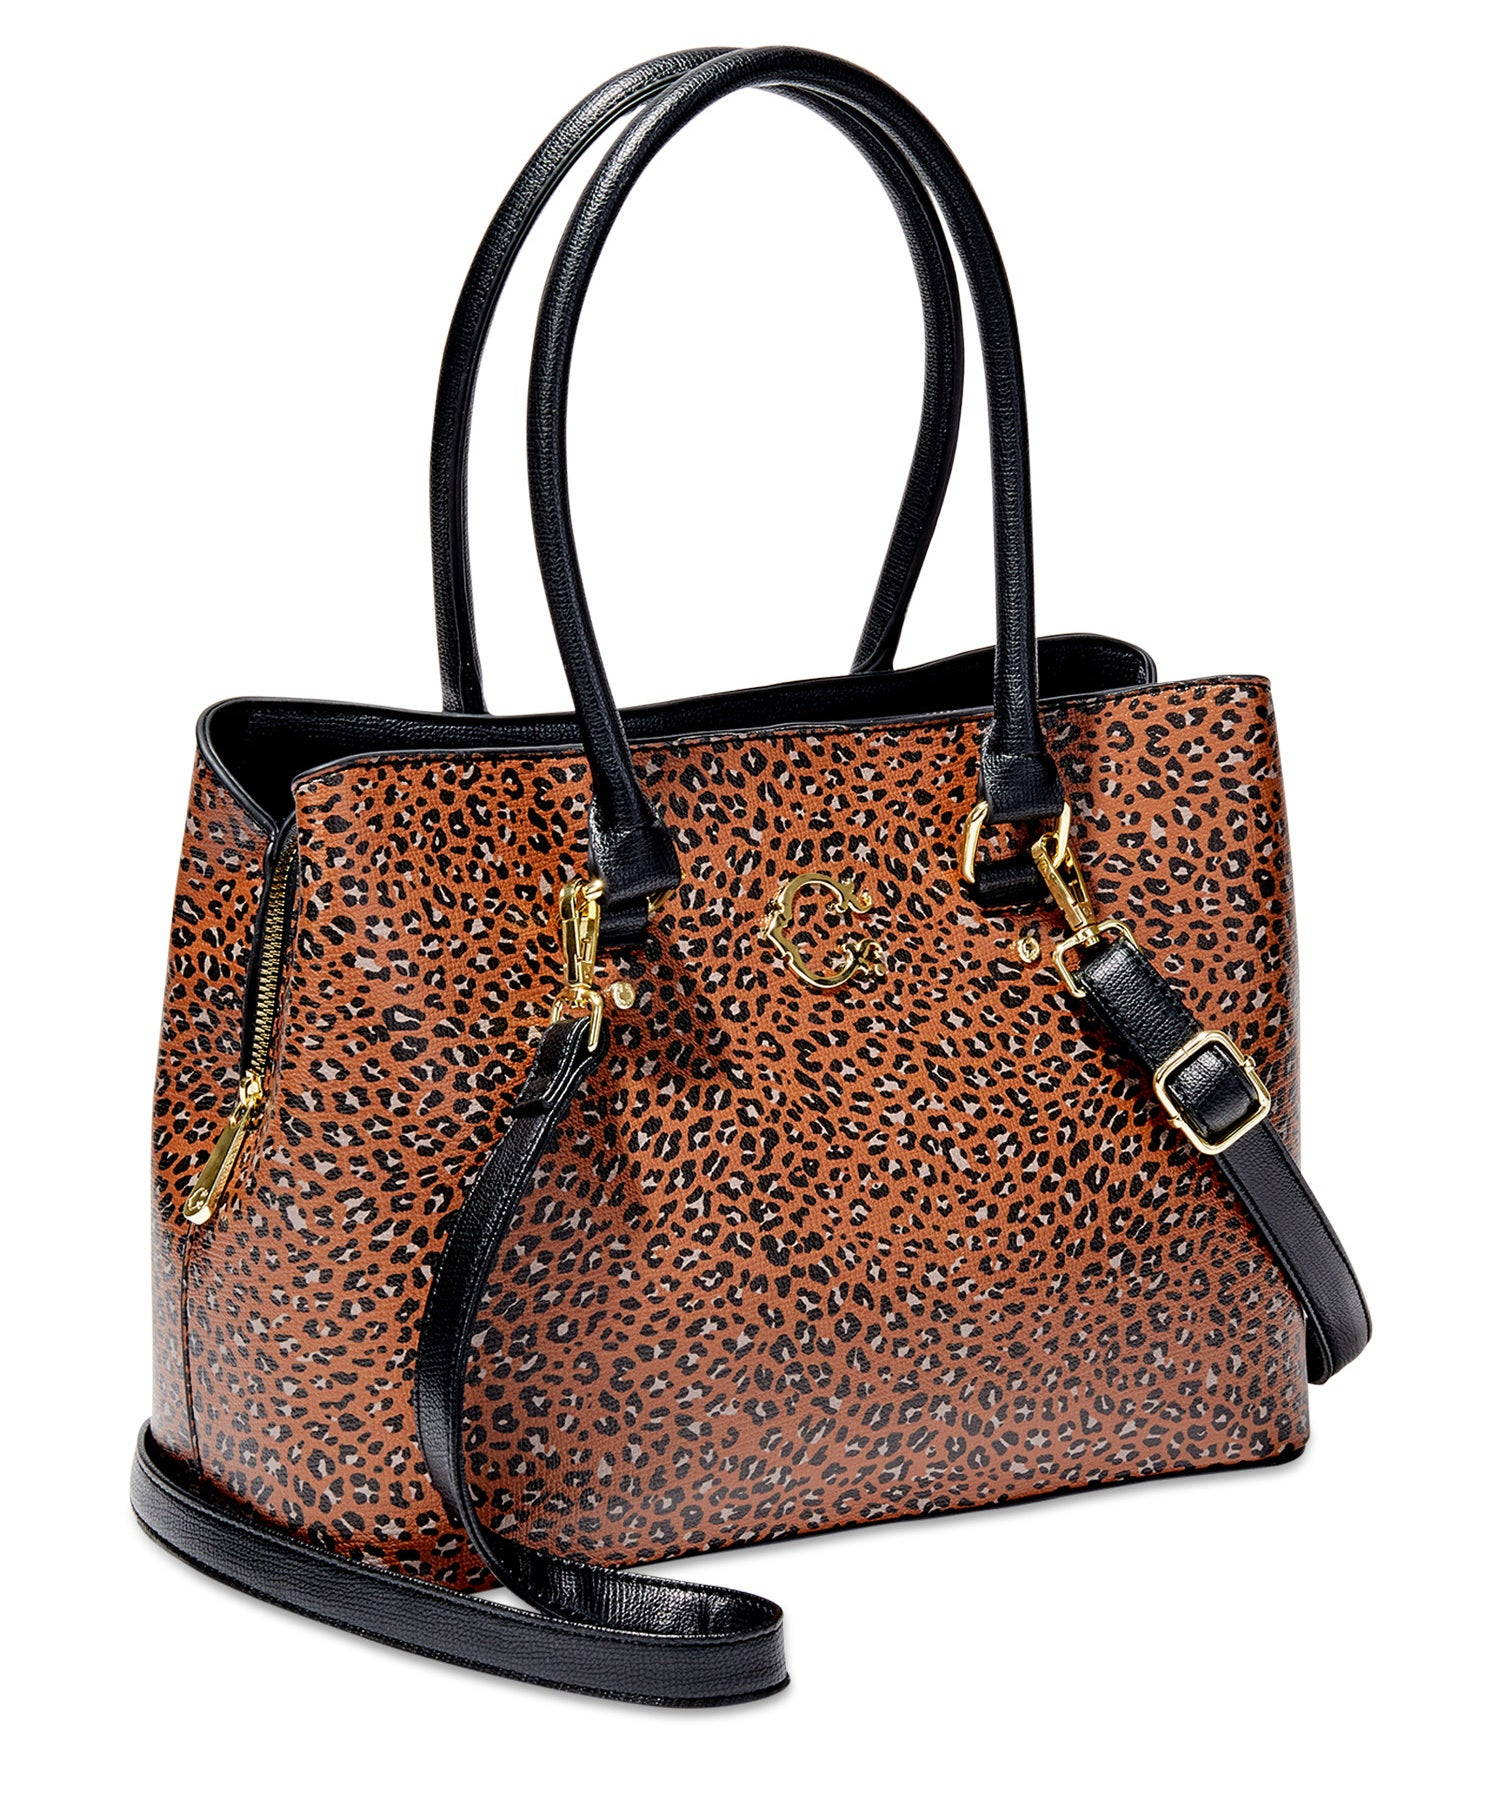 orange leopard print tote bag purse with black strap